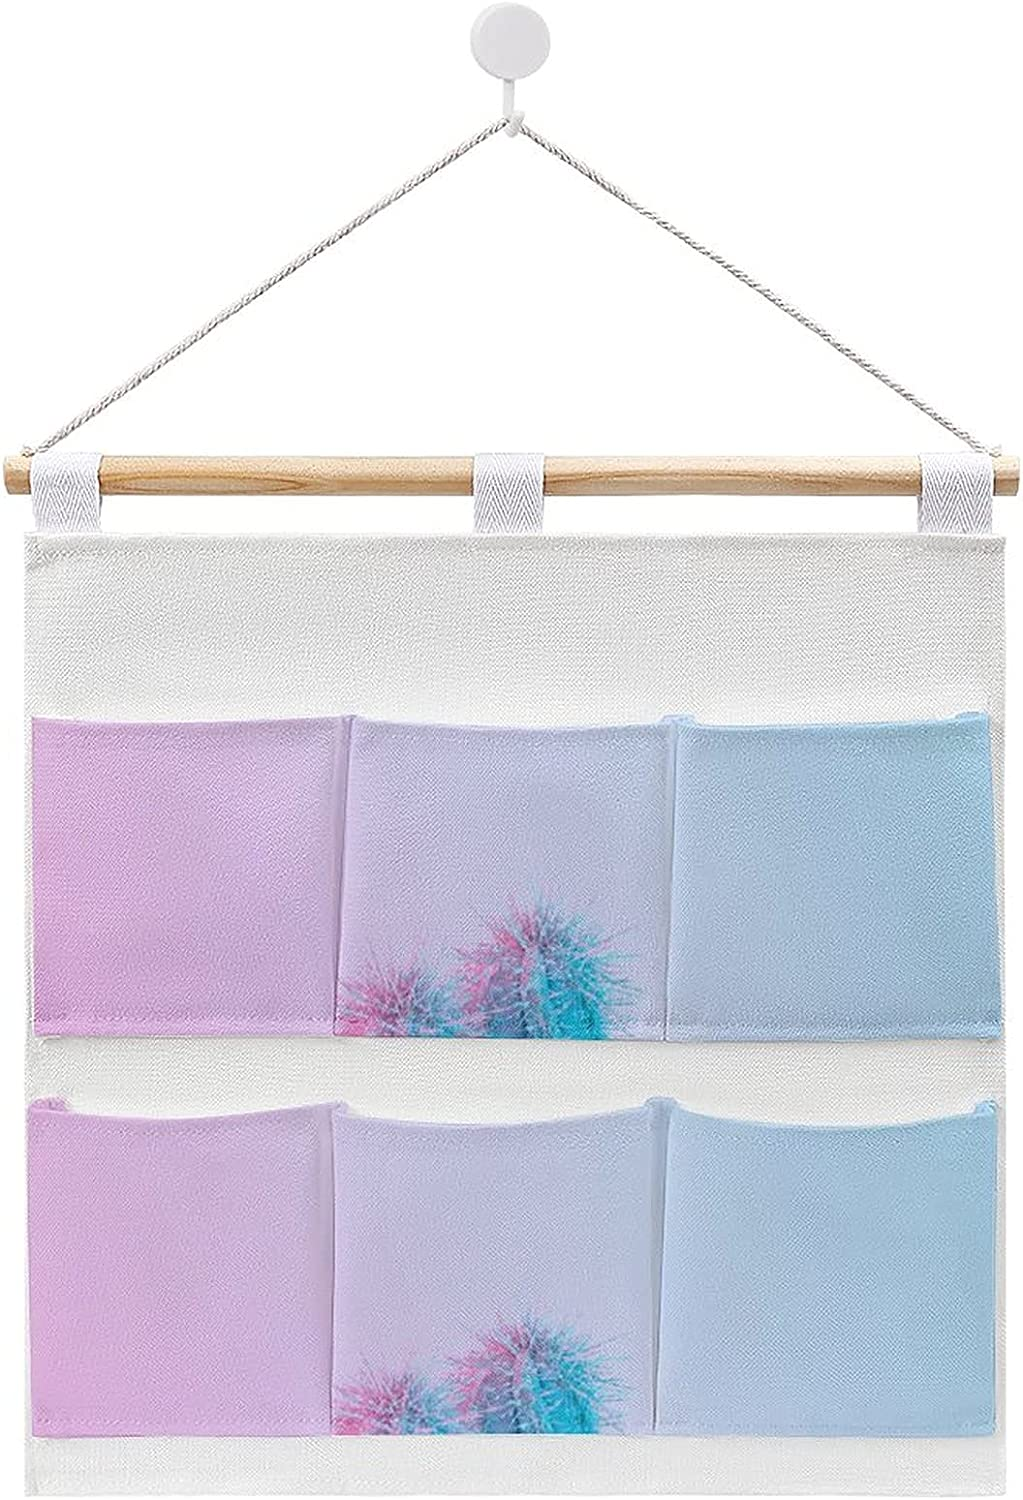 Cactus in Vibrant Purple Hanging cotton st Direct sale of manufacturer linen Long-awaited and bag storage